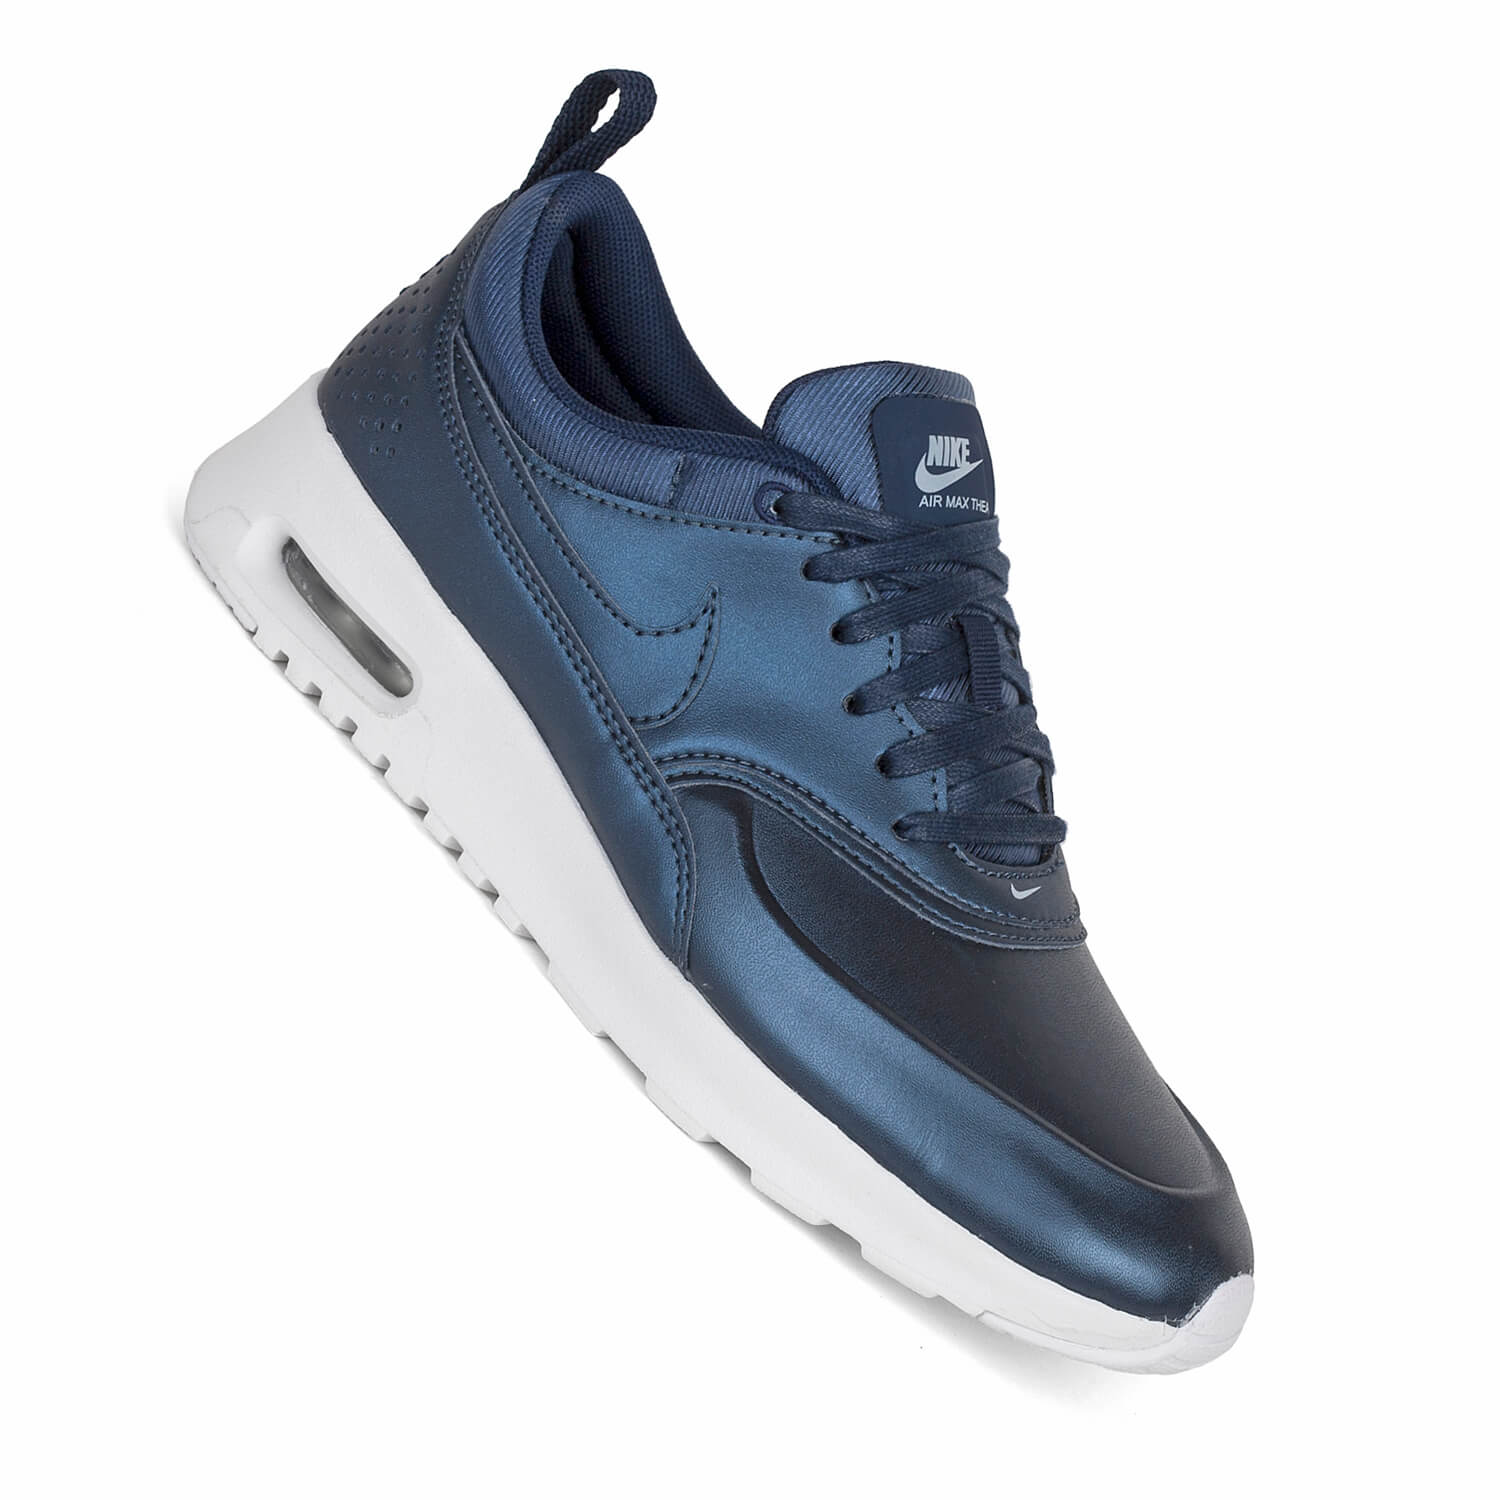 nike air max thea se metalic armory navy damen sneaker. Black Bedroom Furniture Sets. Home Design Ideas